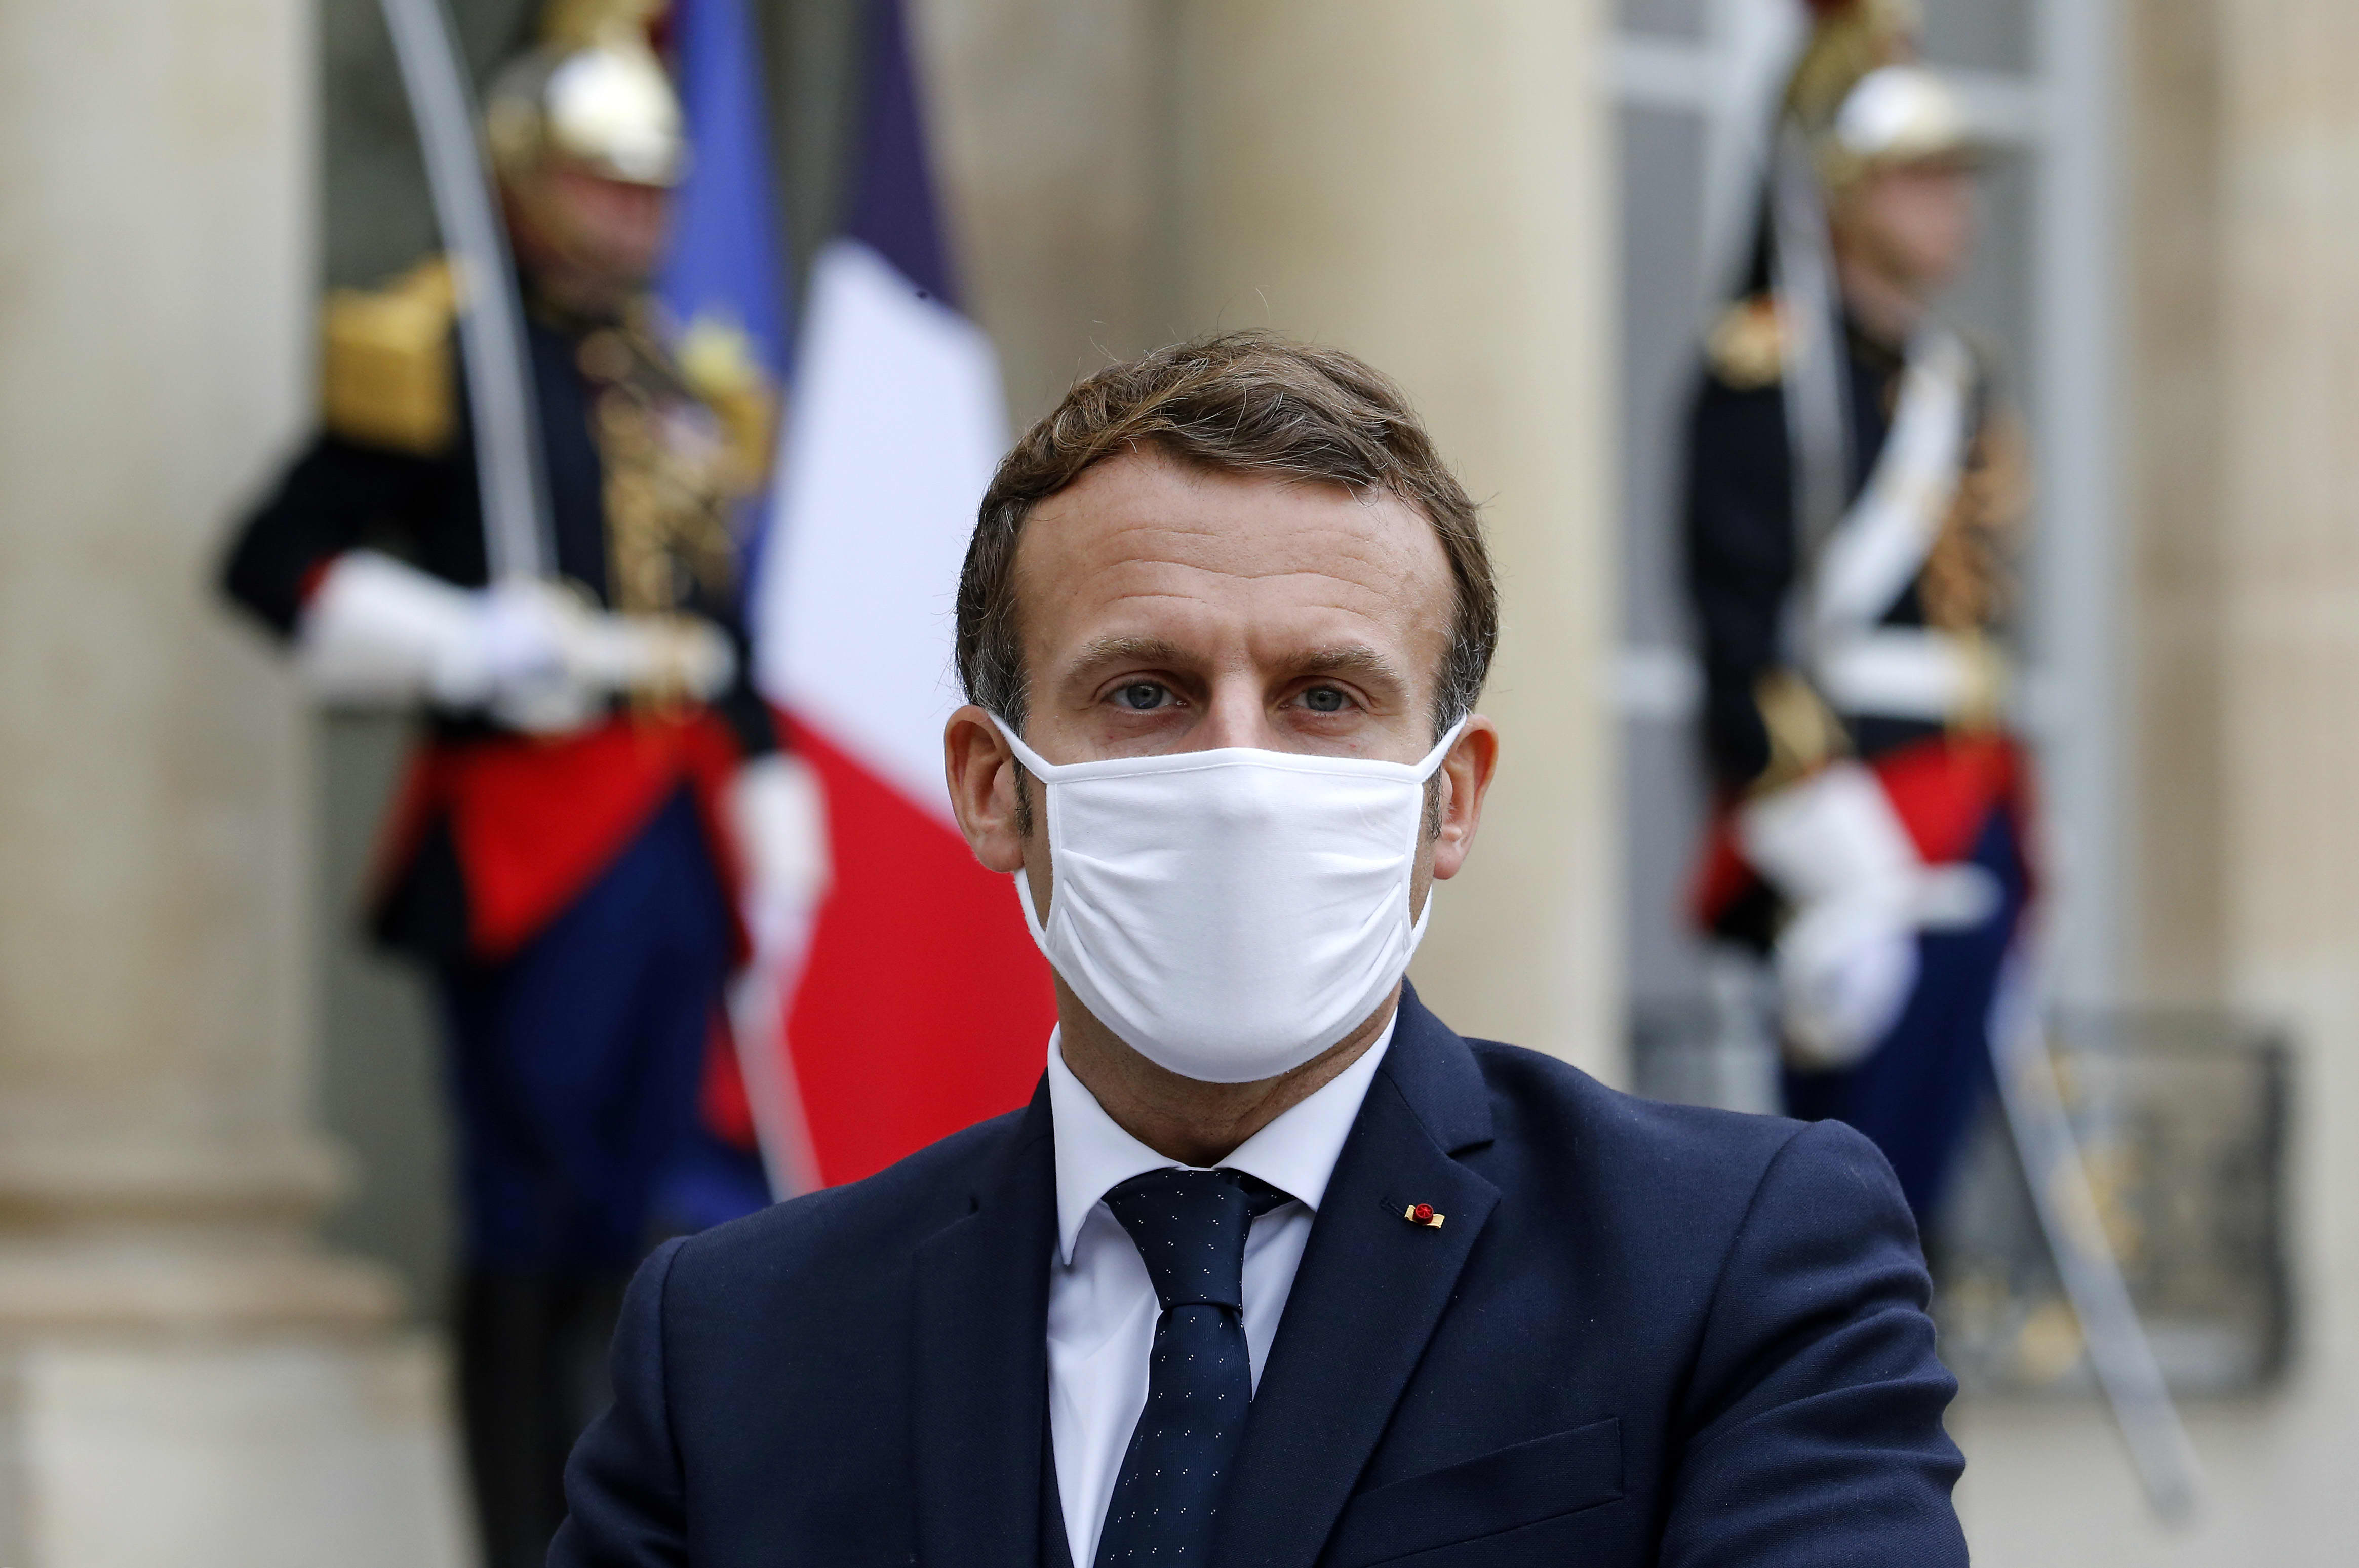 France's Macron tests positive for Covid, prompting other top EU officials to isolate